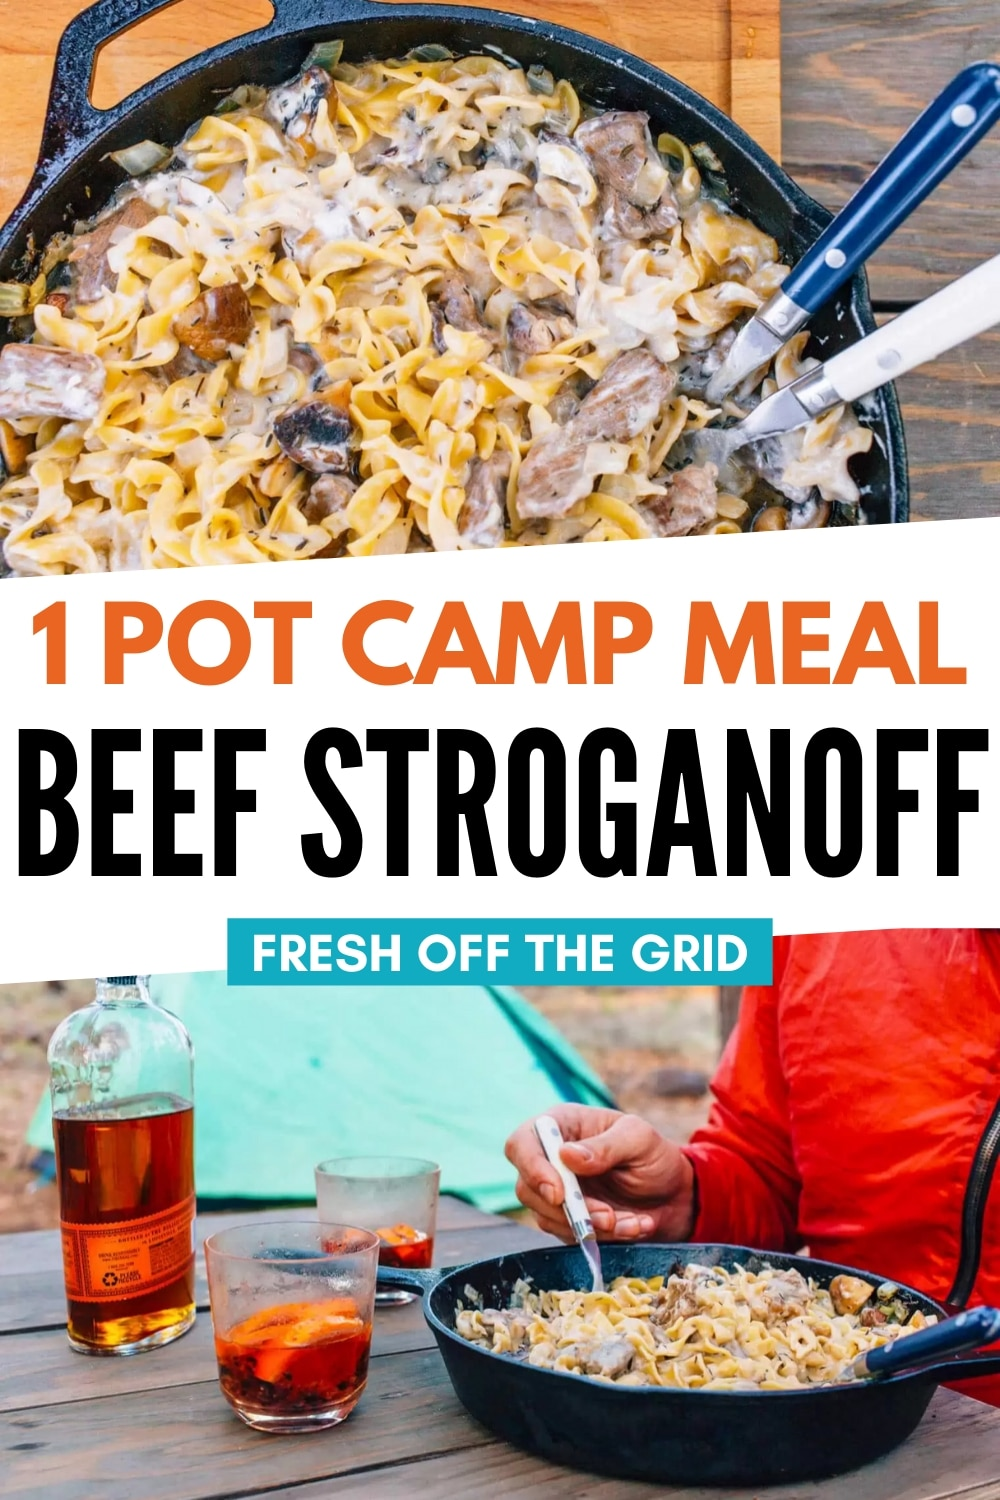 This One Pot Beef Stroganoff is a perfect camping meal! The best beef stroganoff is creamy, savory, and full of tasty beef and noodles, and this recipe DELIVERS! This is camping food at its finest. via @freshoffthegrid